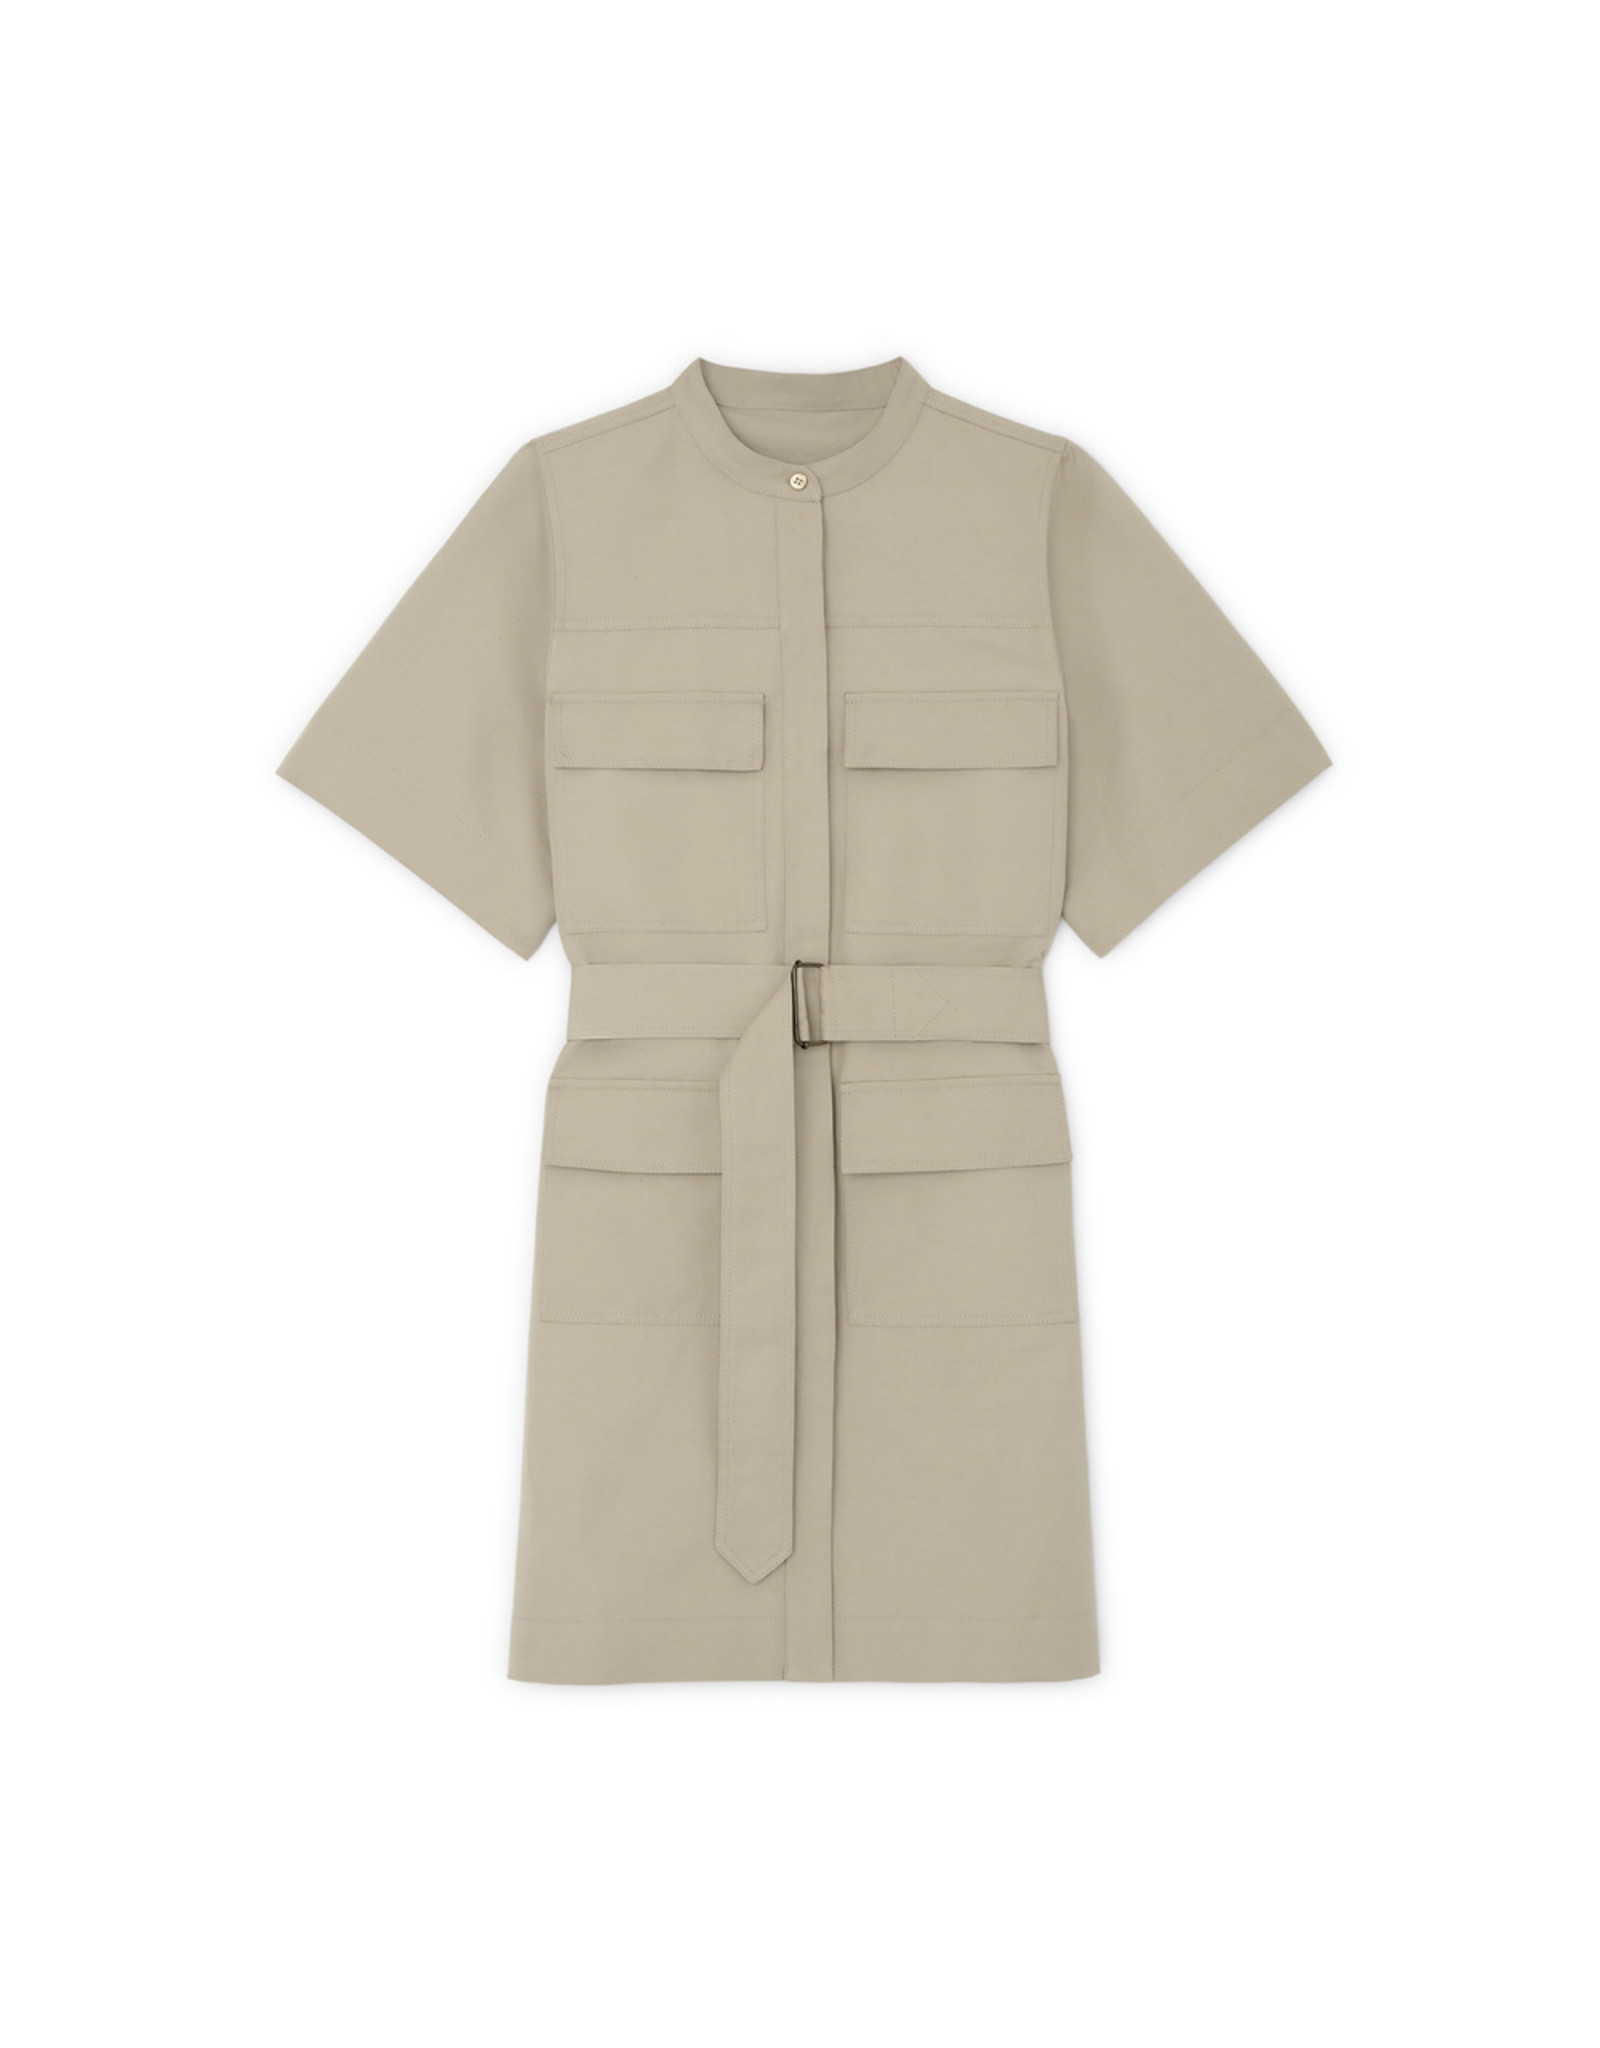 G. Label G. Label Umbria Utility Shirtdress (Color: Khaki, Size: S)